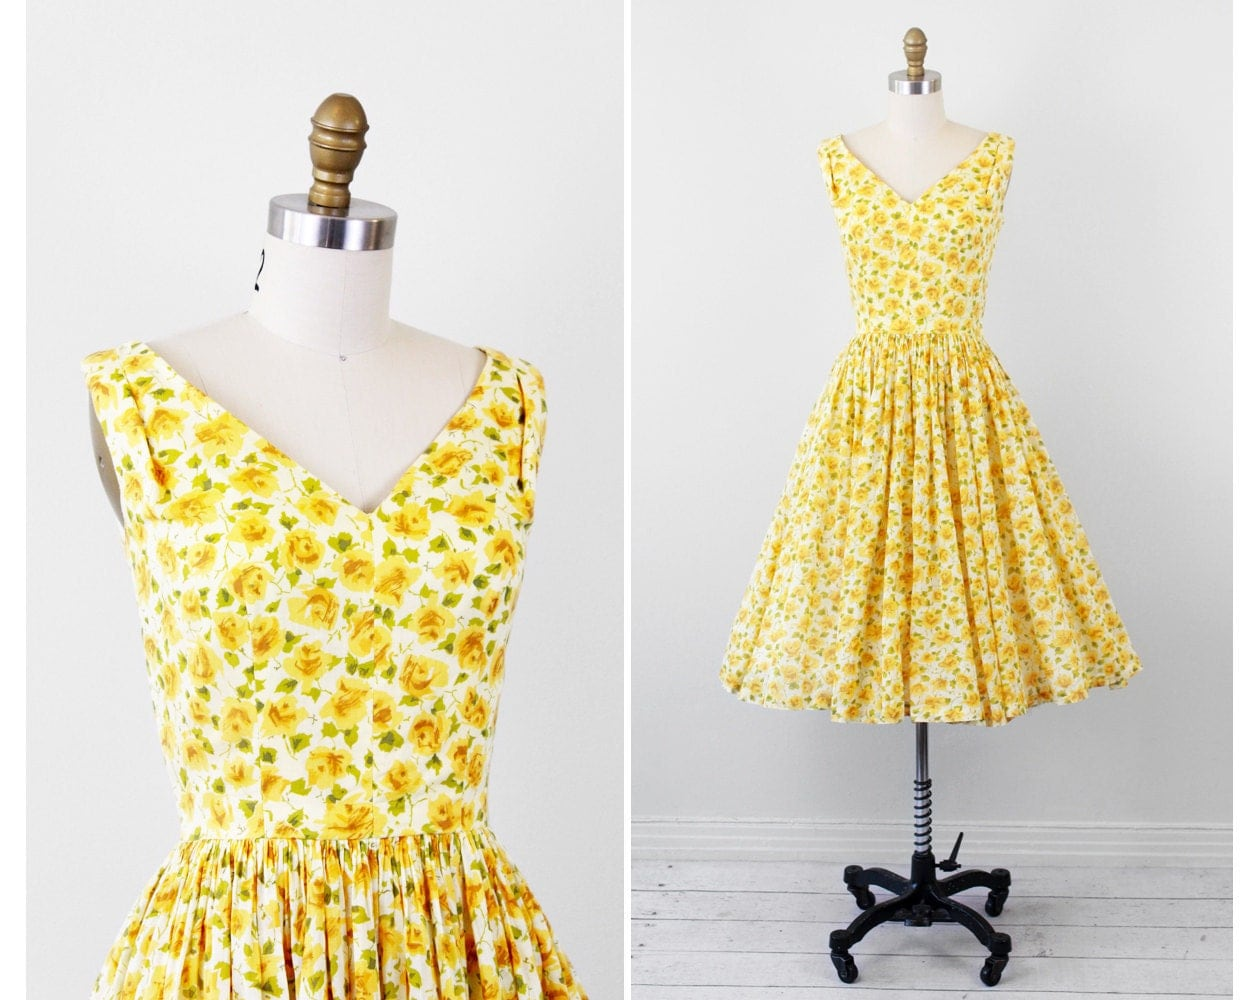 Vintage 1950s 50s Dress // Sheer Yellow Floral Cotton Sundress